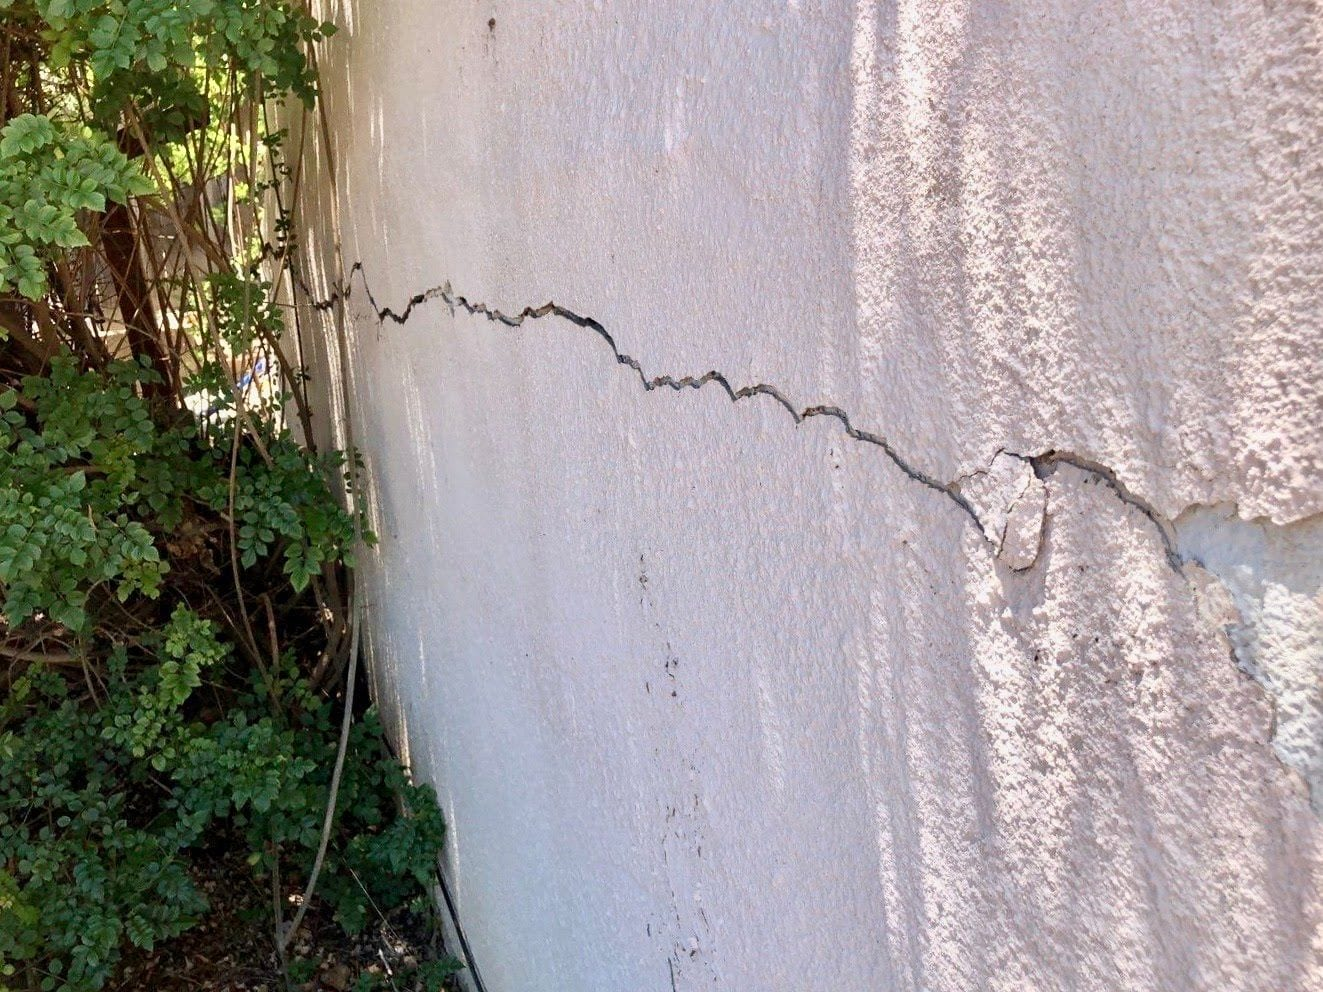 Exterior signs of foundation problems - horizontal cracks in walls